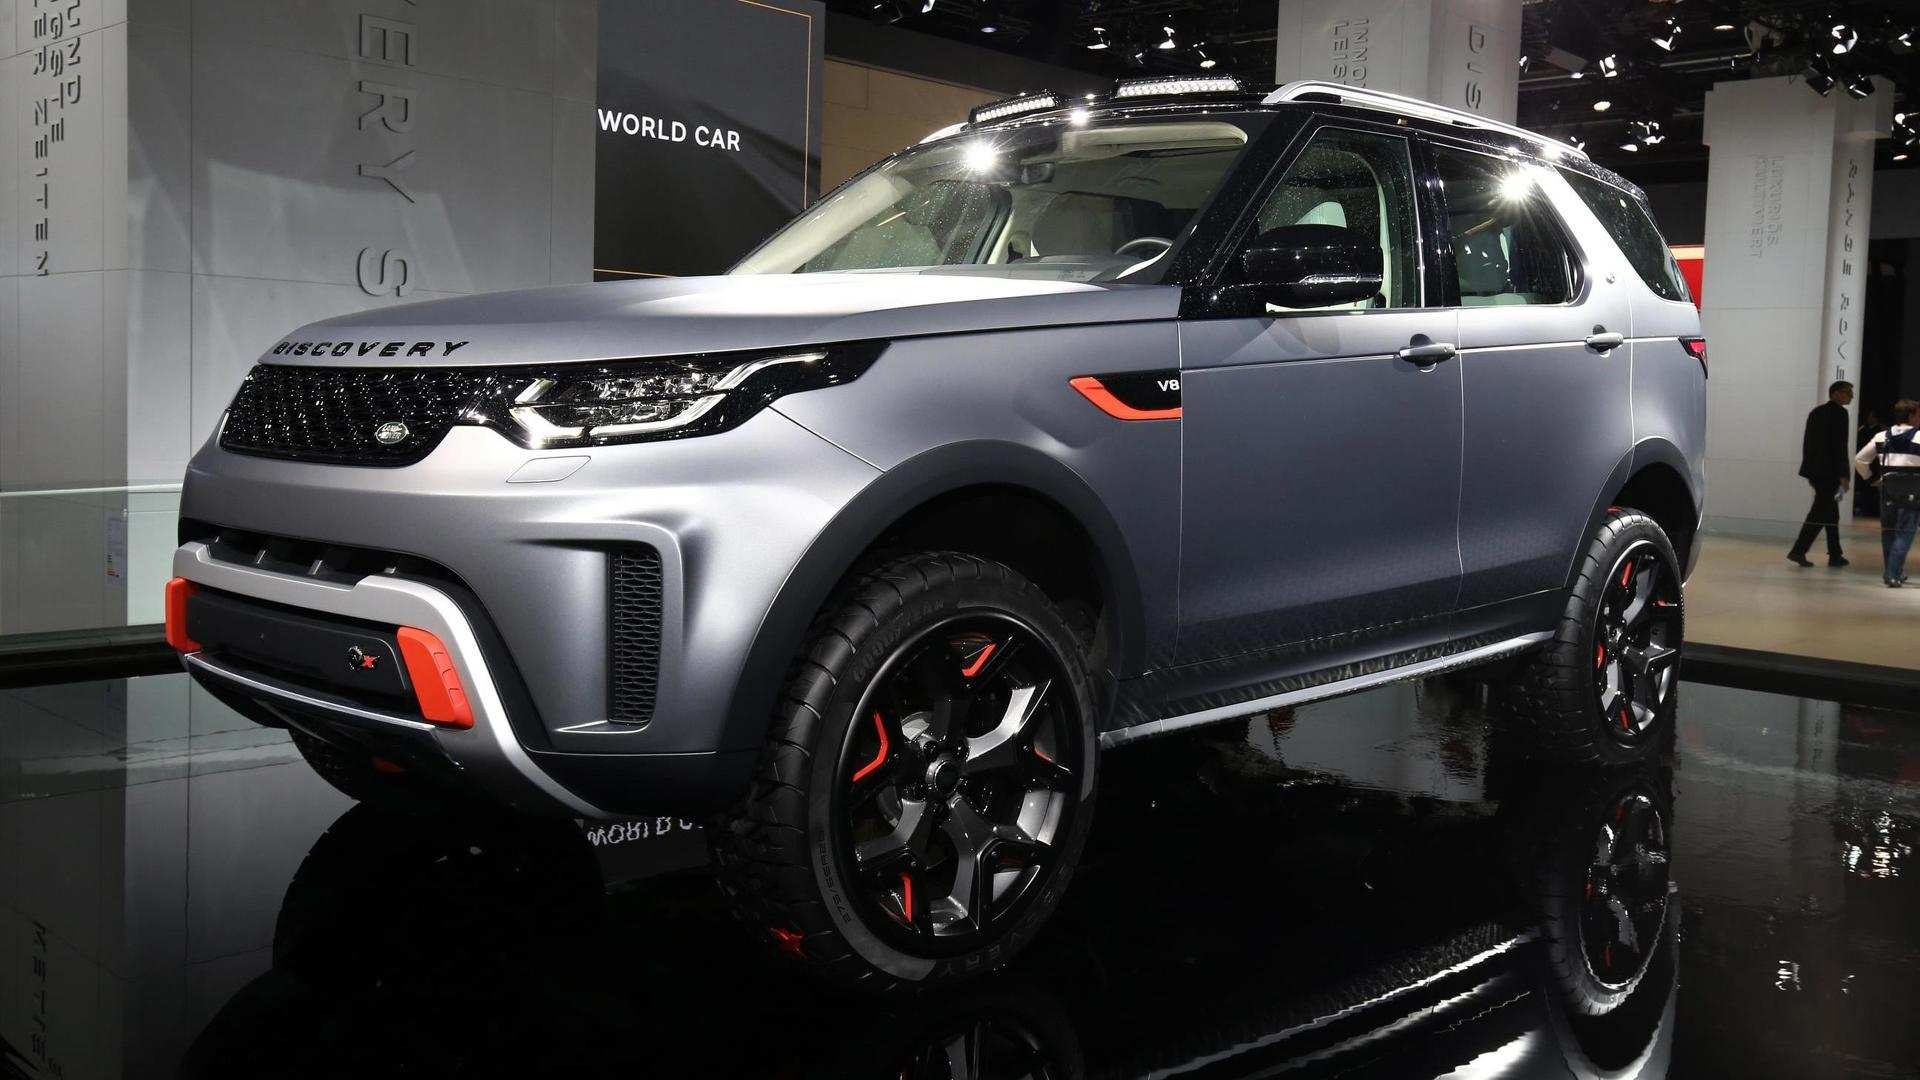 50 New 2019 Land Rover Discovery Svx Exterior for 2019 Land Rover Discovery Svx